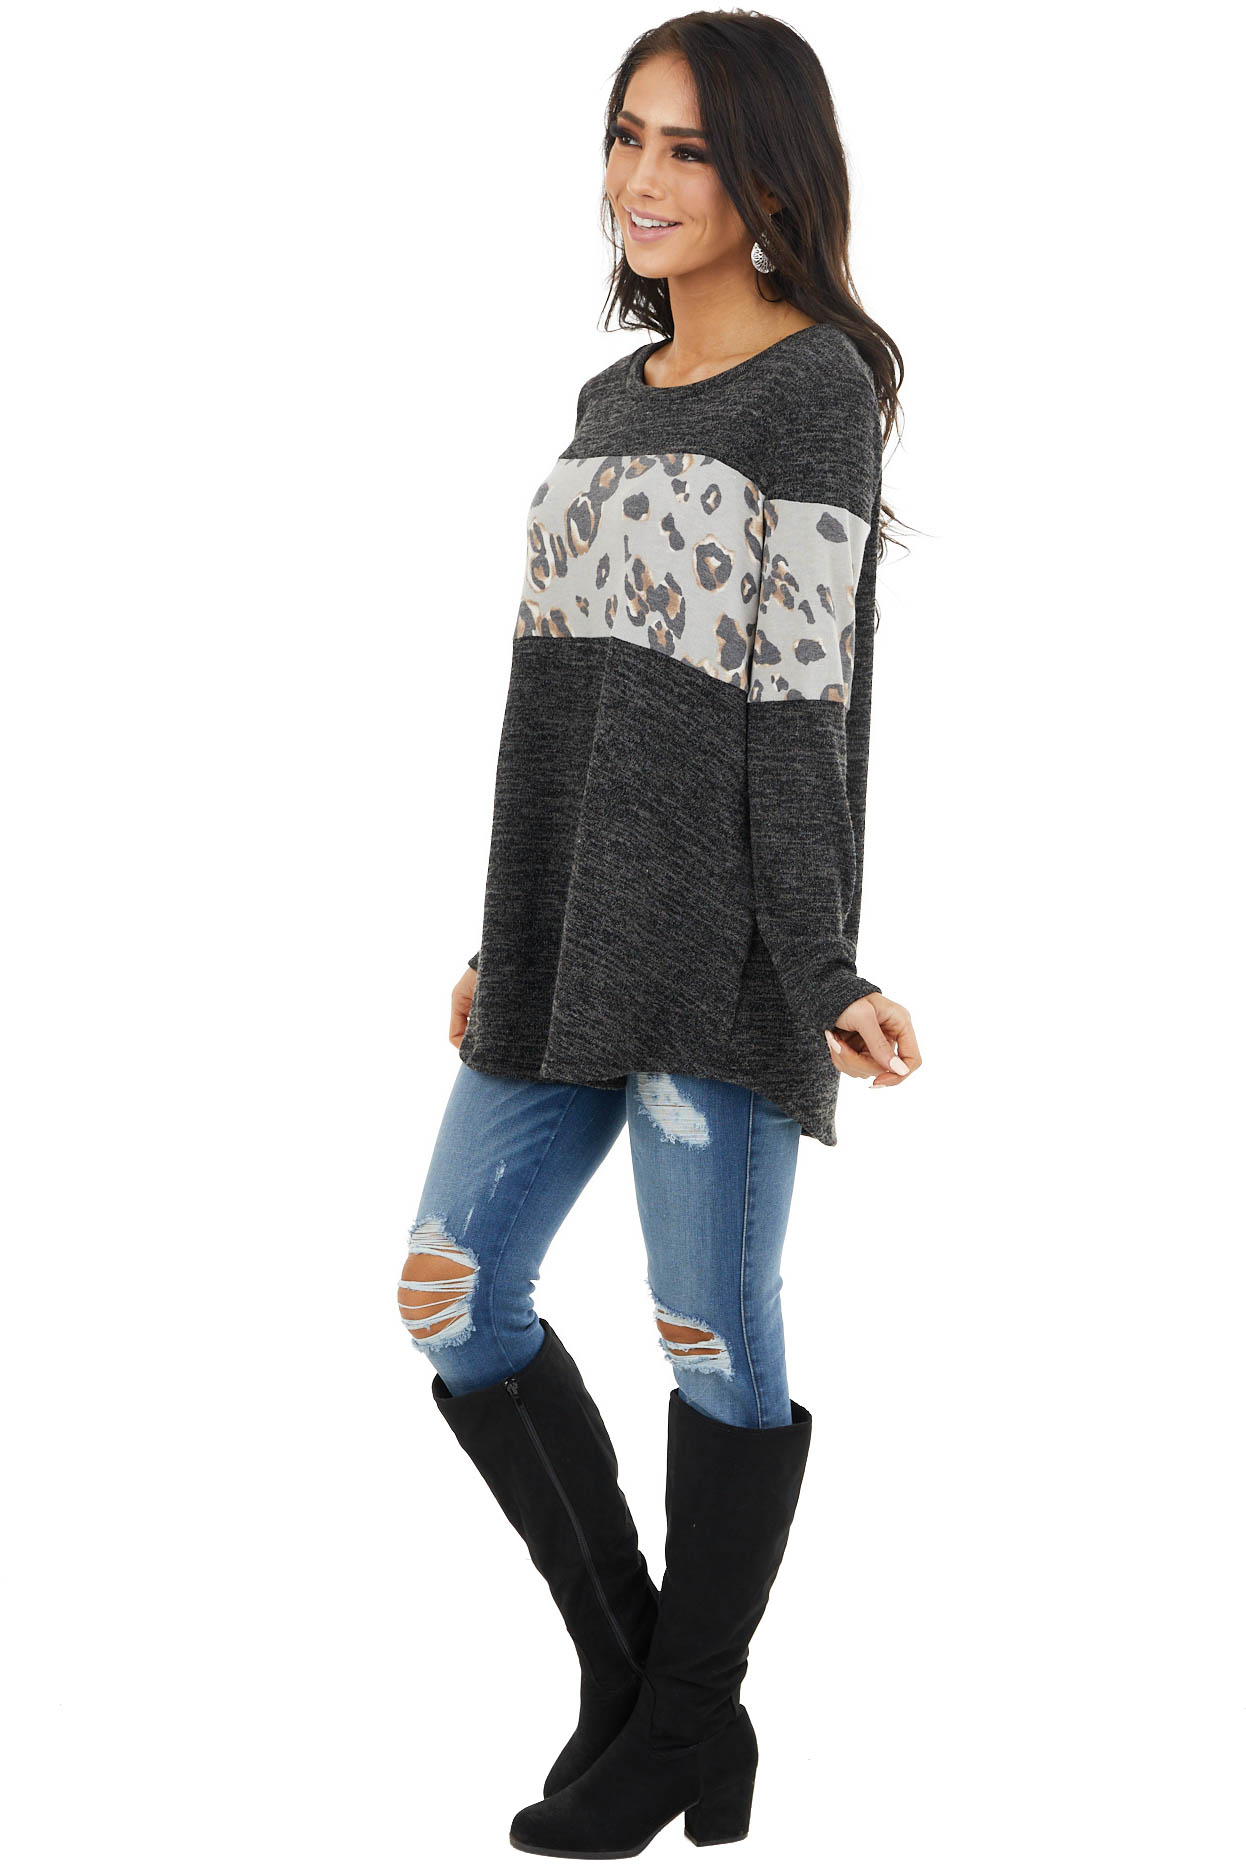 Charcoal and Oatmeal Leopard Long Sleeve Lightweight Top